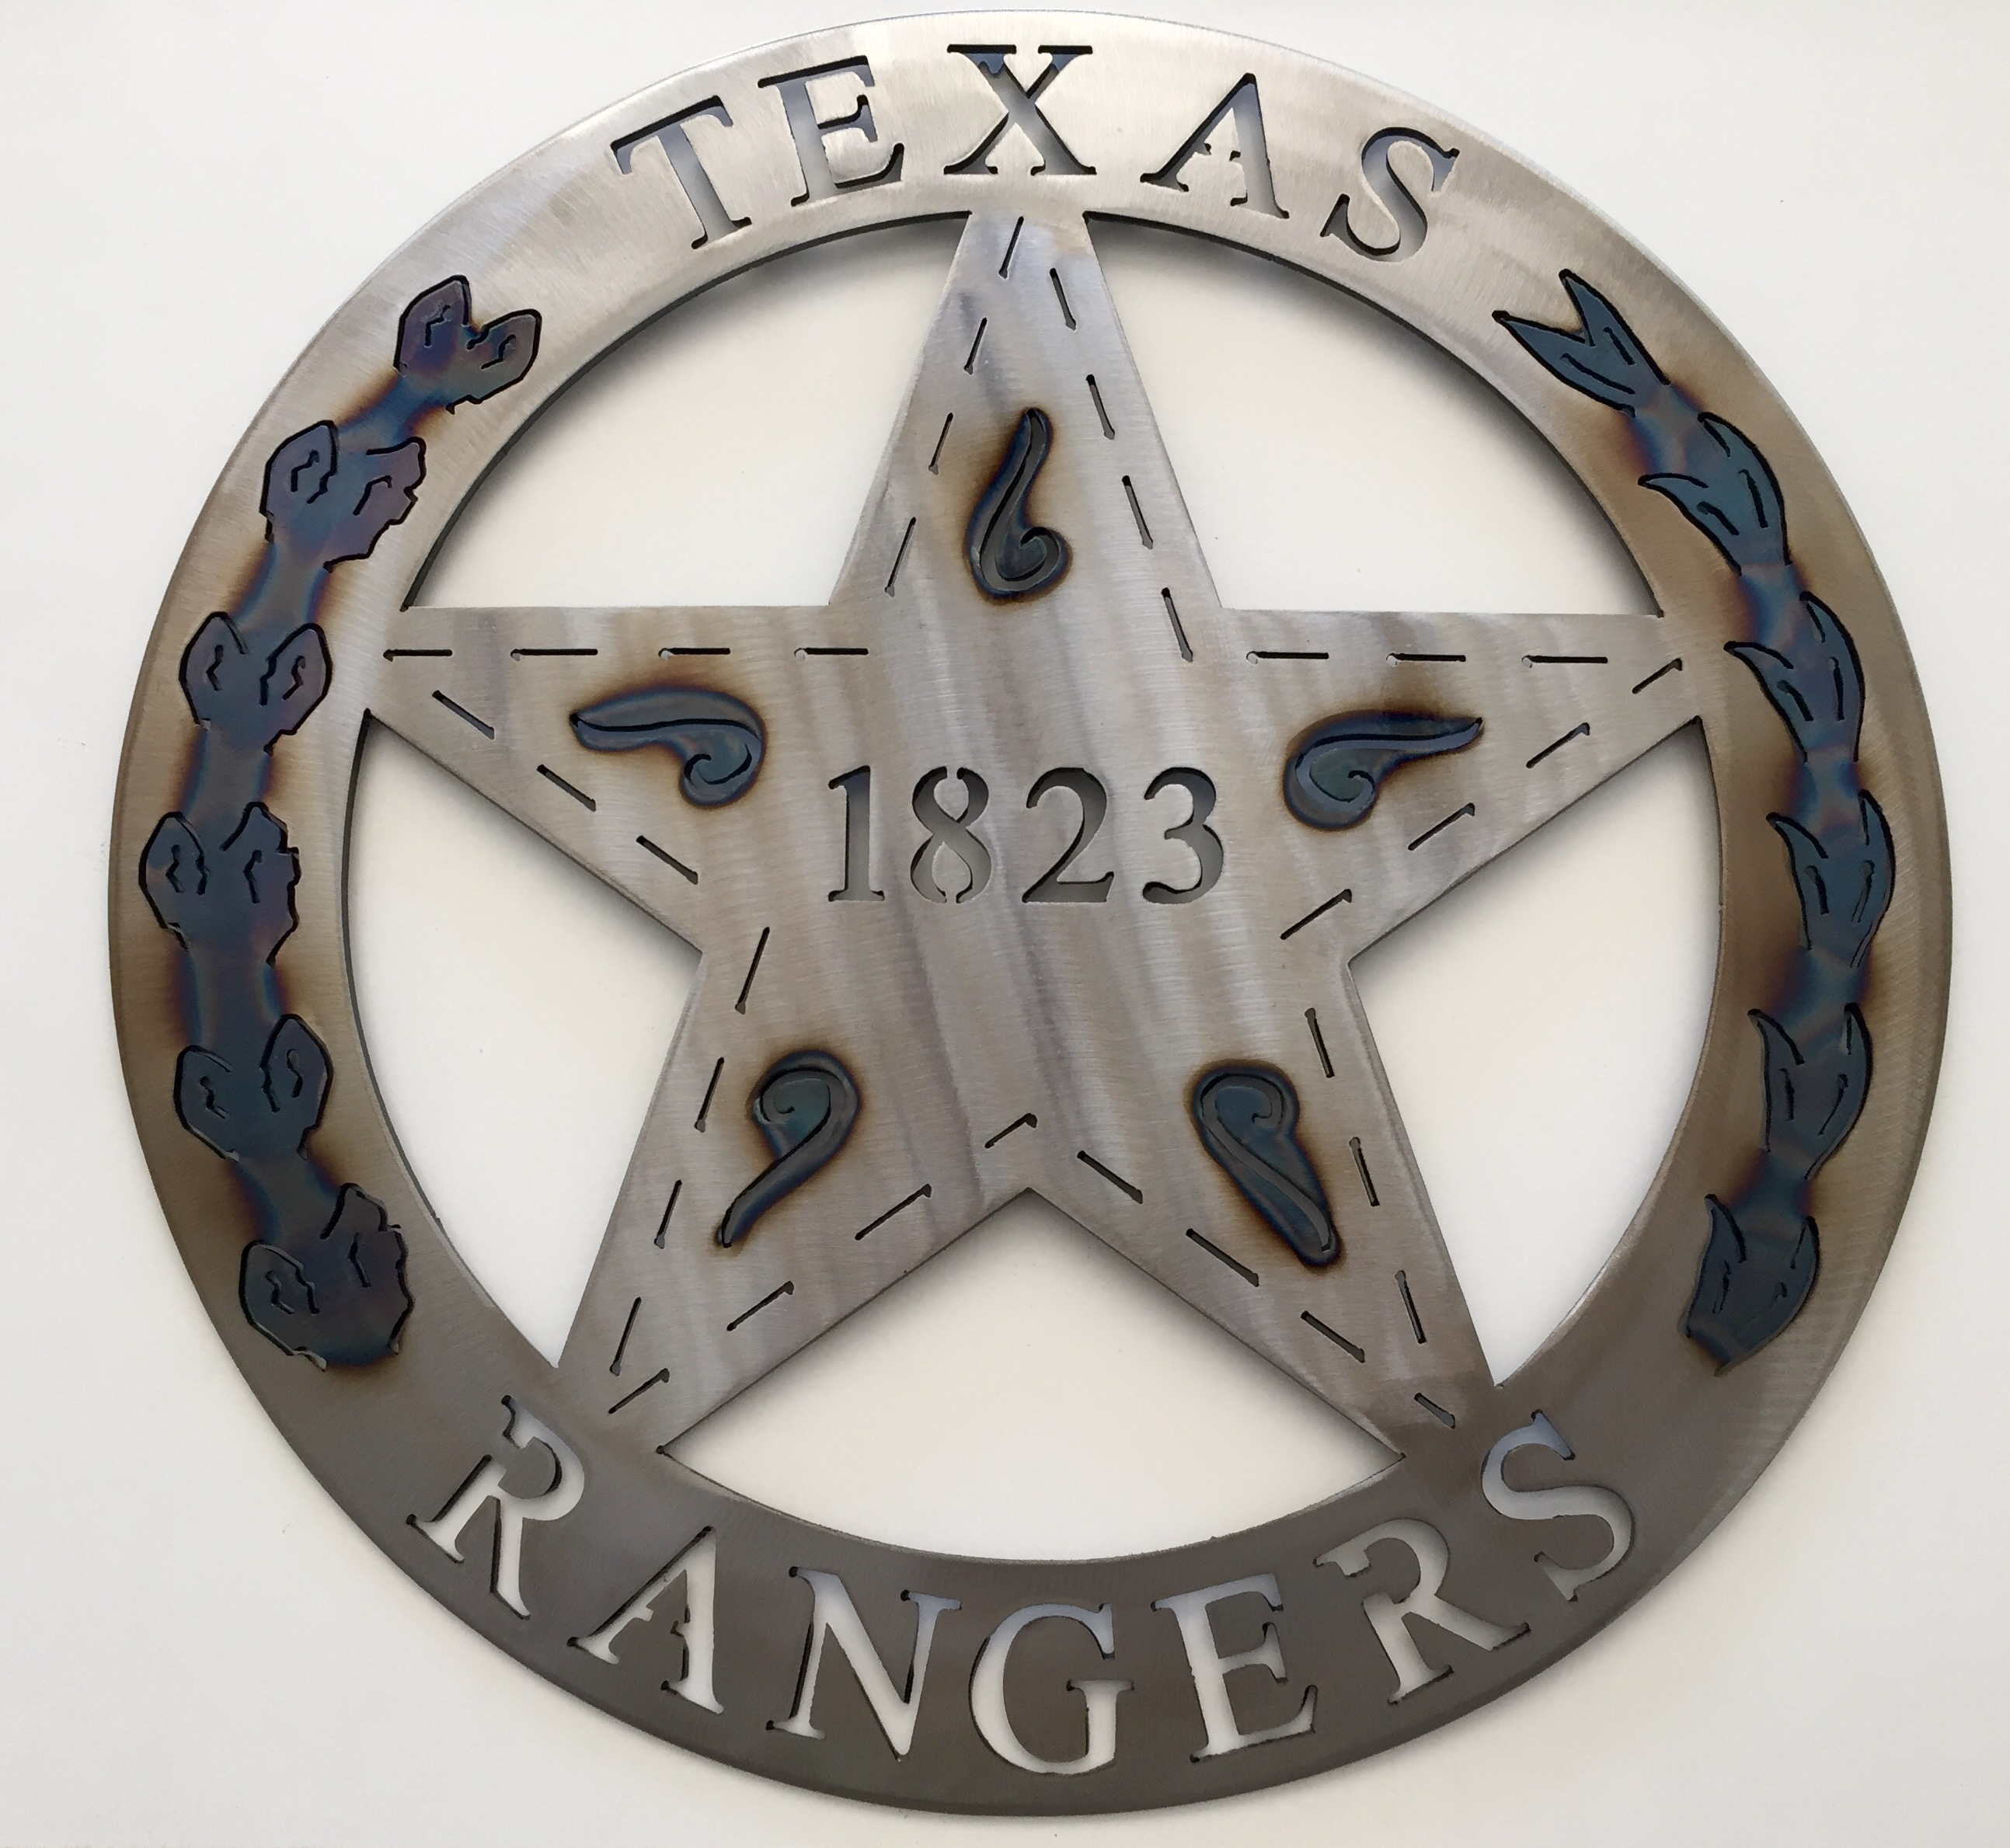 Texas Rangers - 1823 - Texas Metal Art